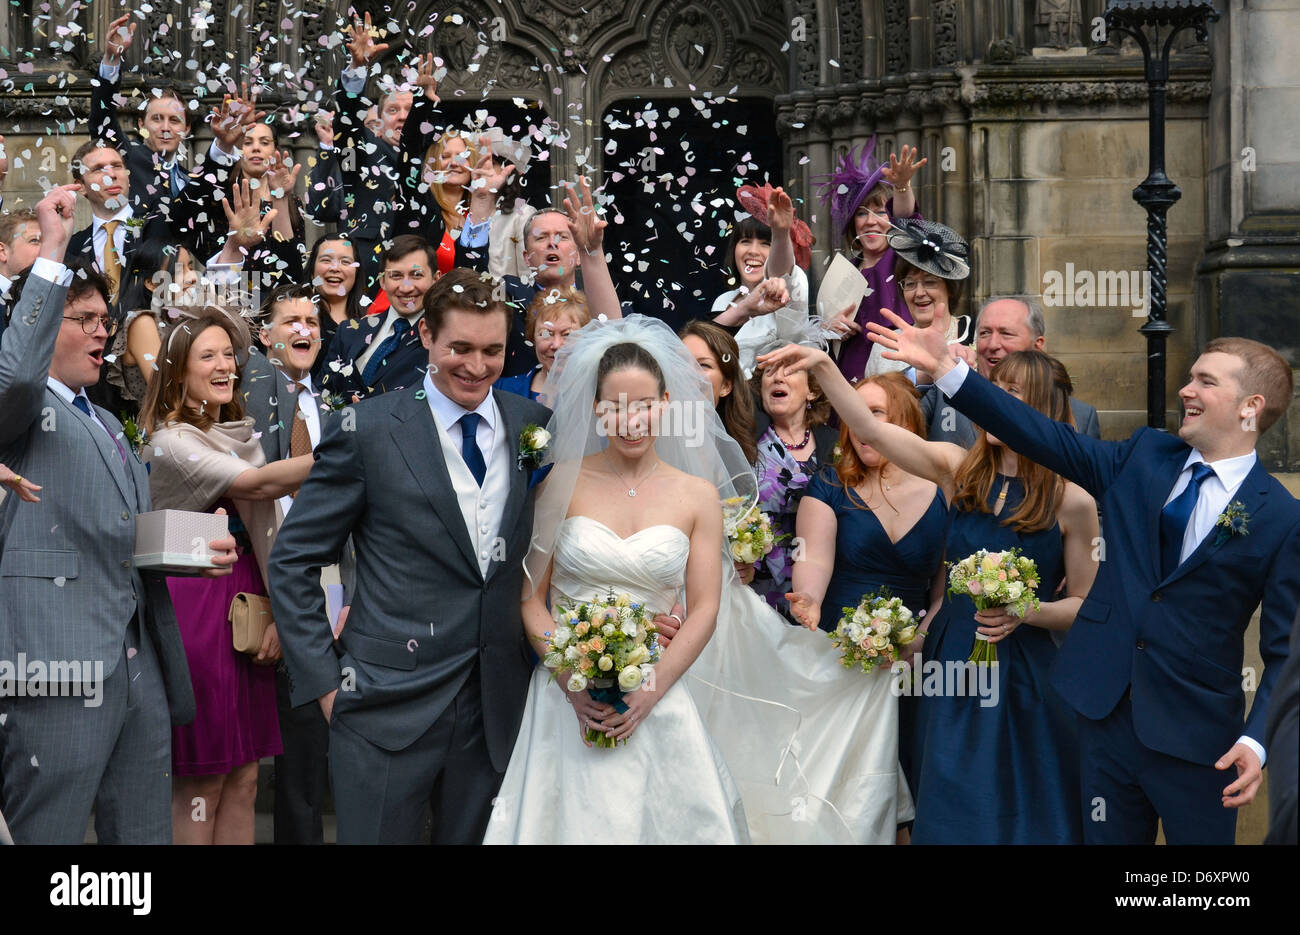 Wedding guests shower the bride and groom with confetti on the steps of St Giles Cathedral, Edinburgh. Stock Photo